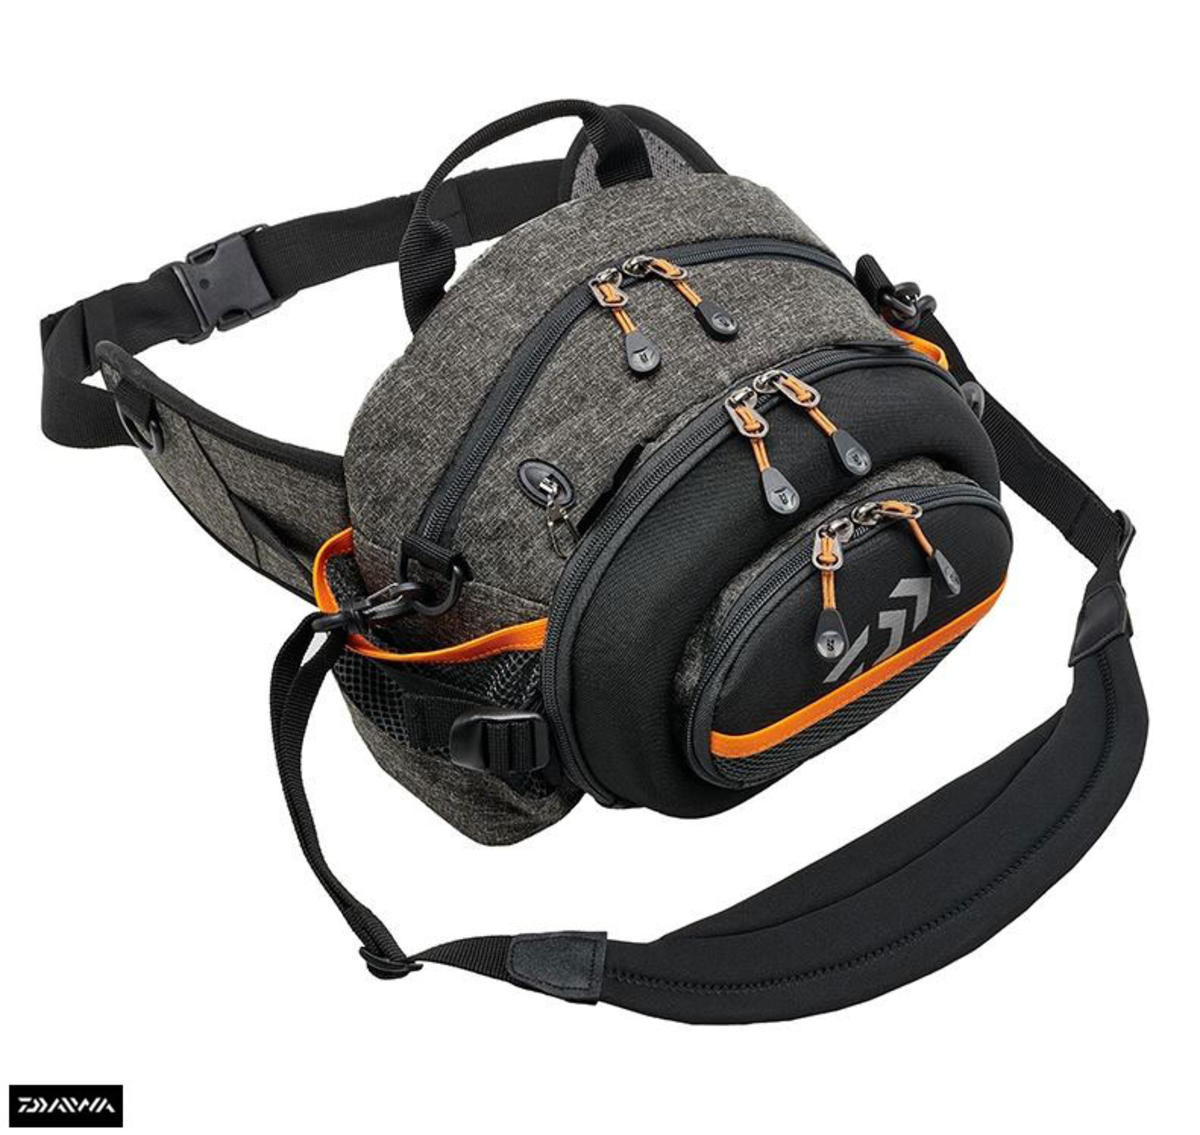 New Daiwa Waist Pack / Fishing Bag - DWP-1